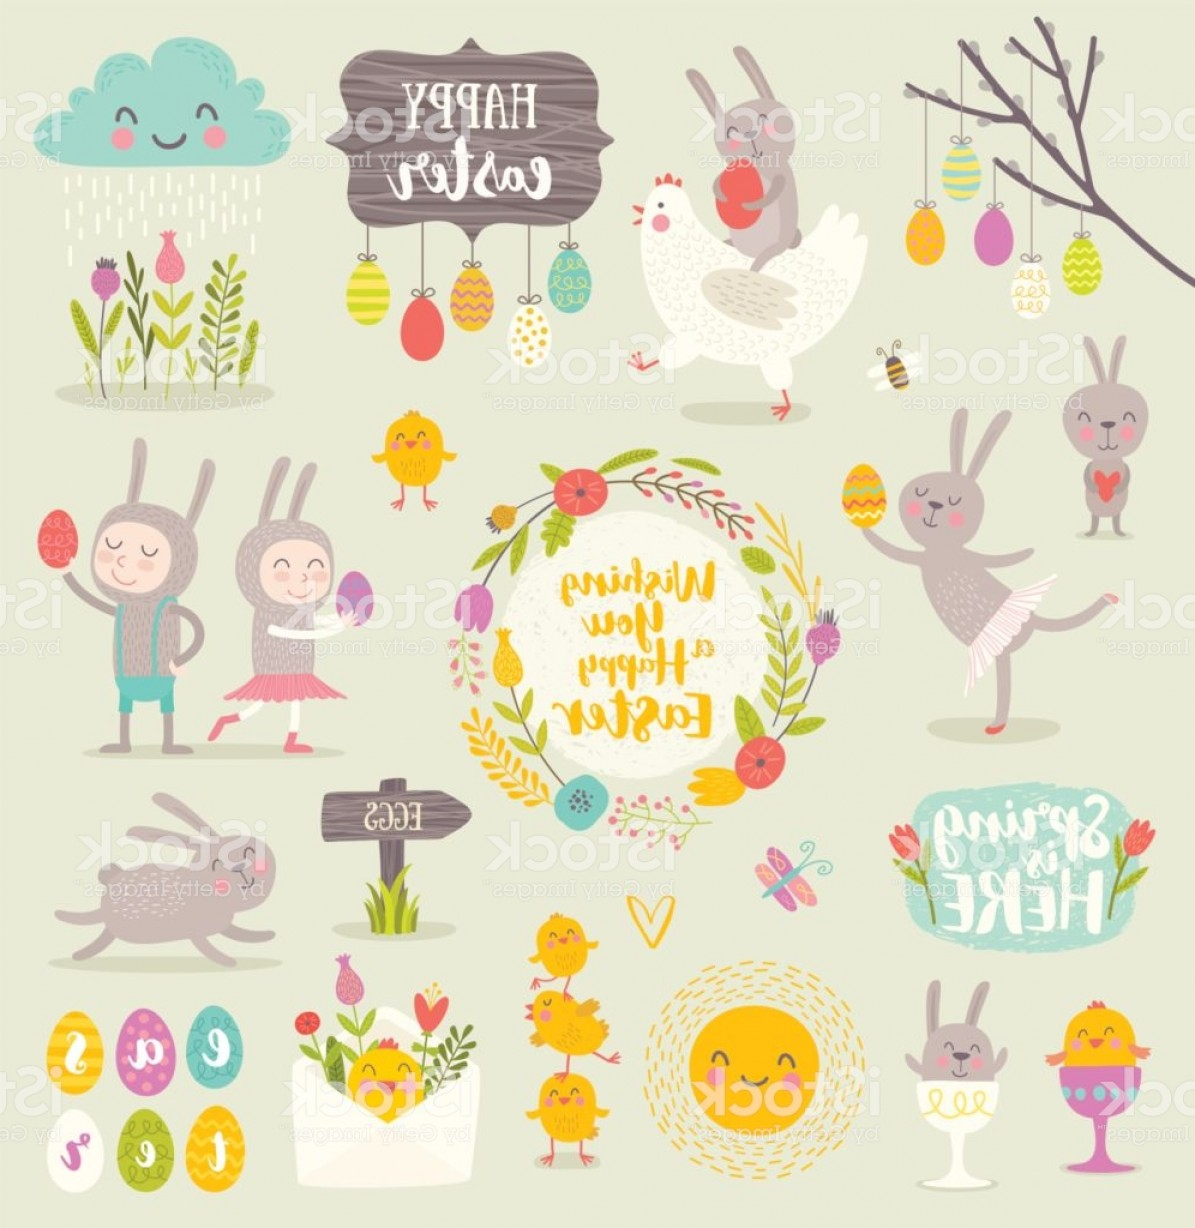 Cute Design Elements Vector Set: Set Of Cute Easter Cartoon Characters And Design Elements Gm